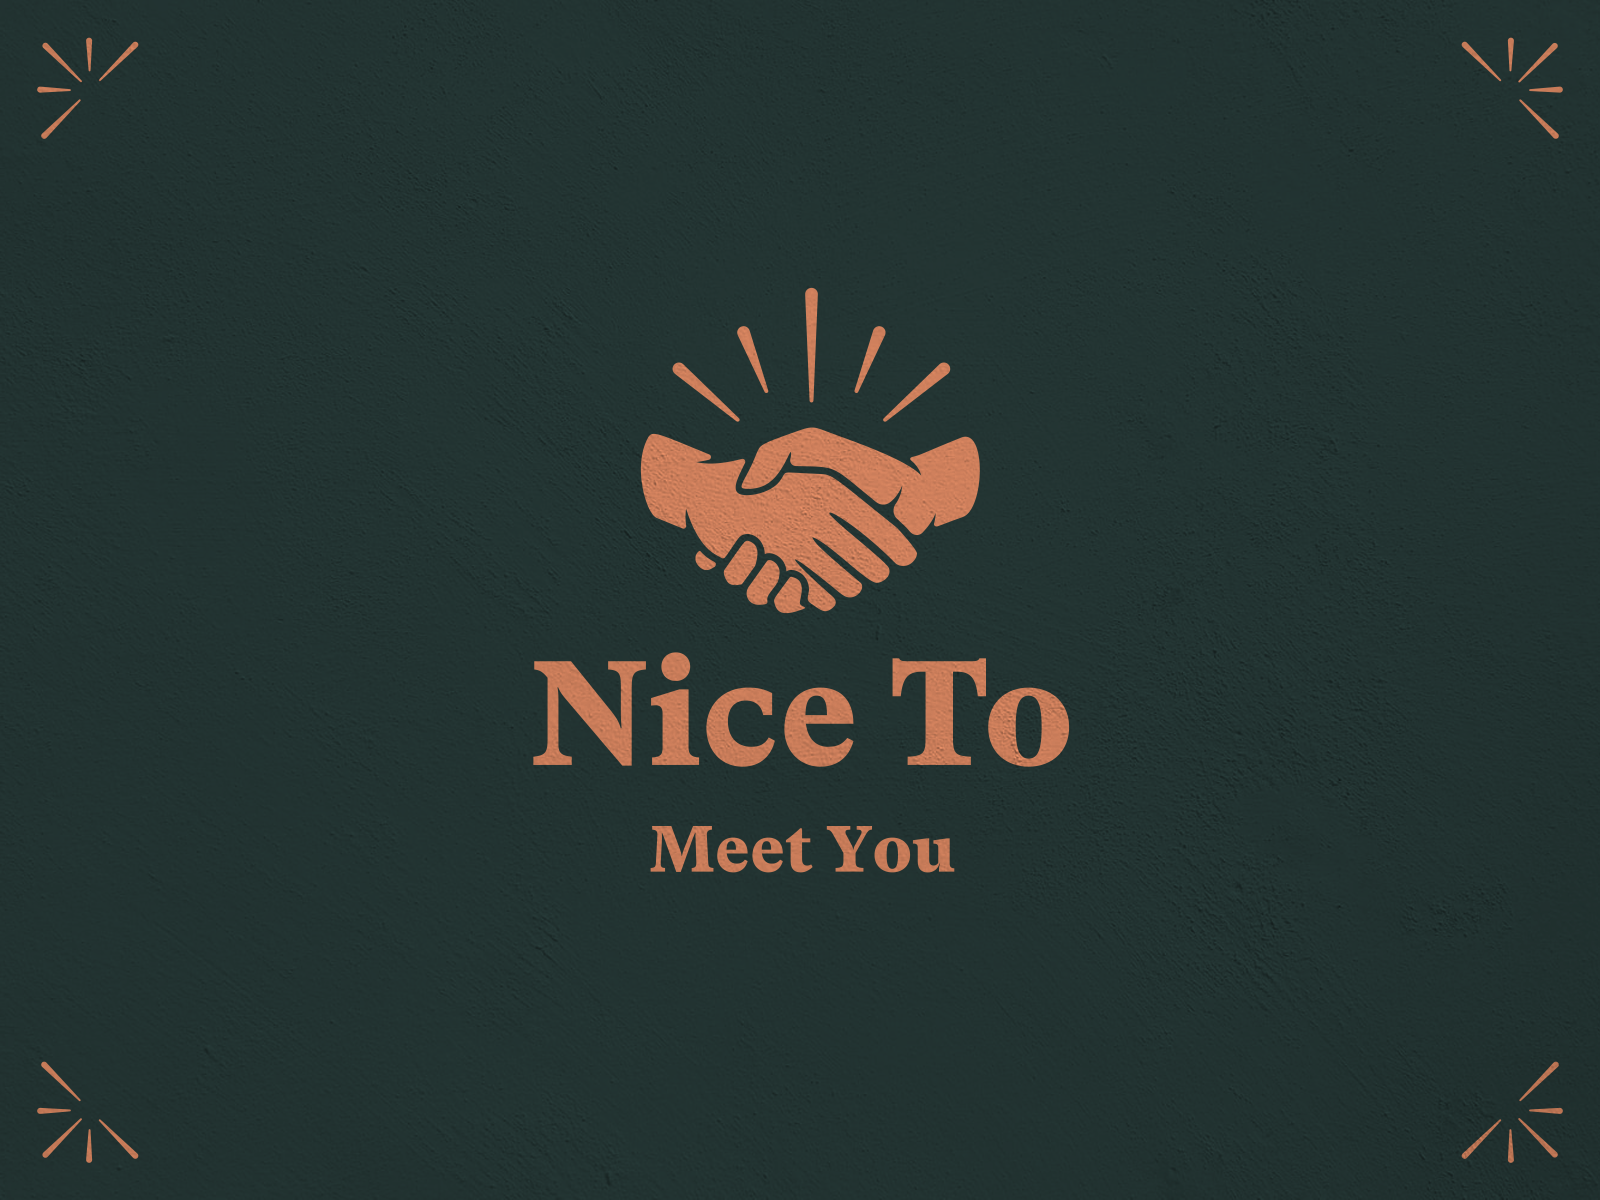 Nice To Meet You By Nick Johnston On Dribbble